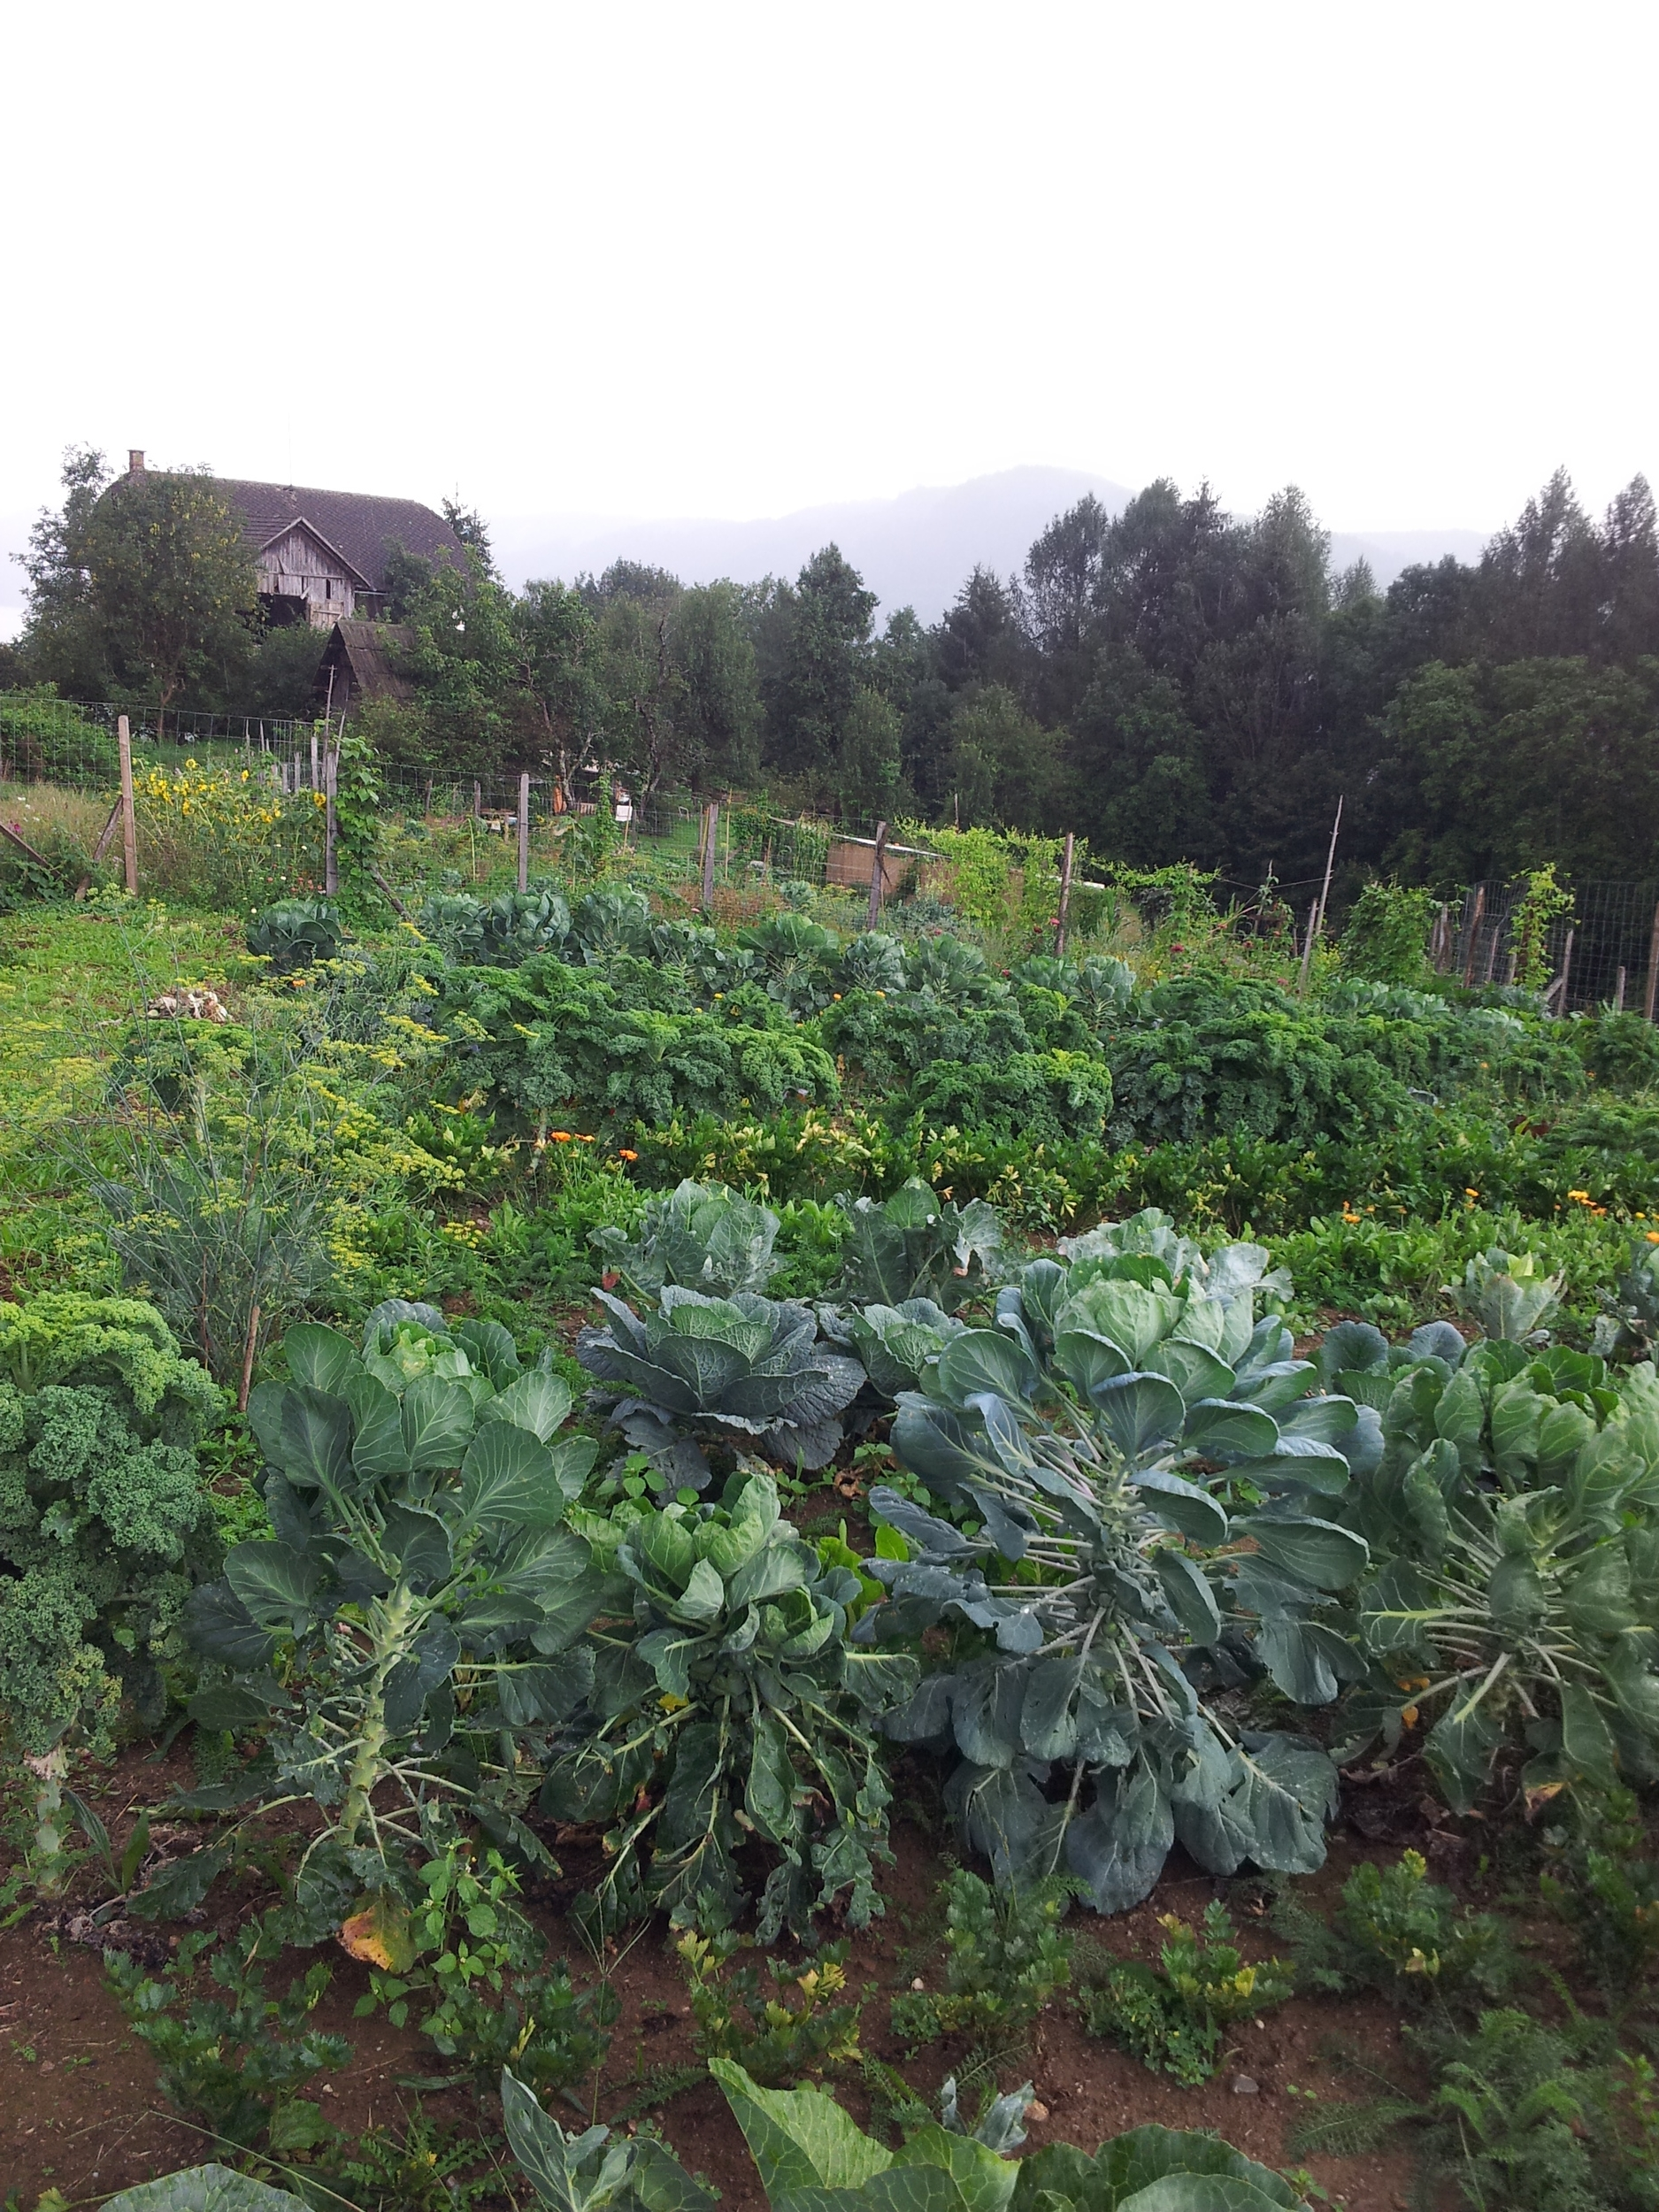 We visited a biodynamic organic vegetable farm. It was magical and luscious. Unfortunately they don't have a website.